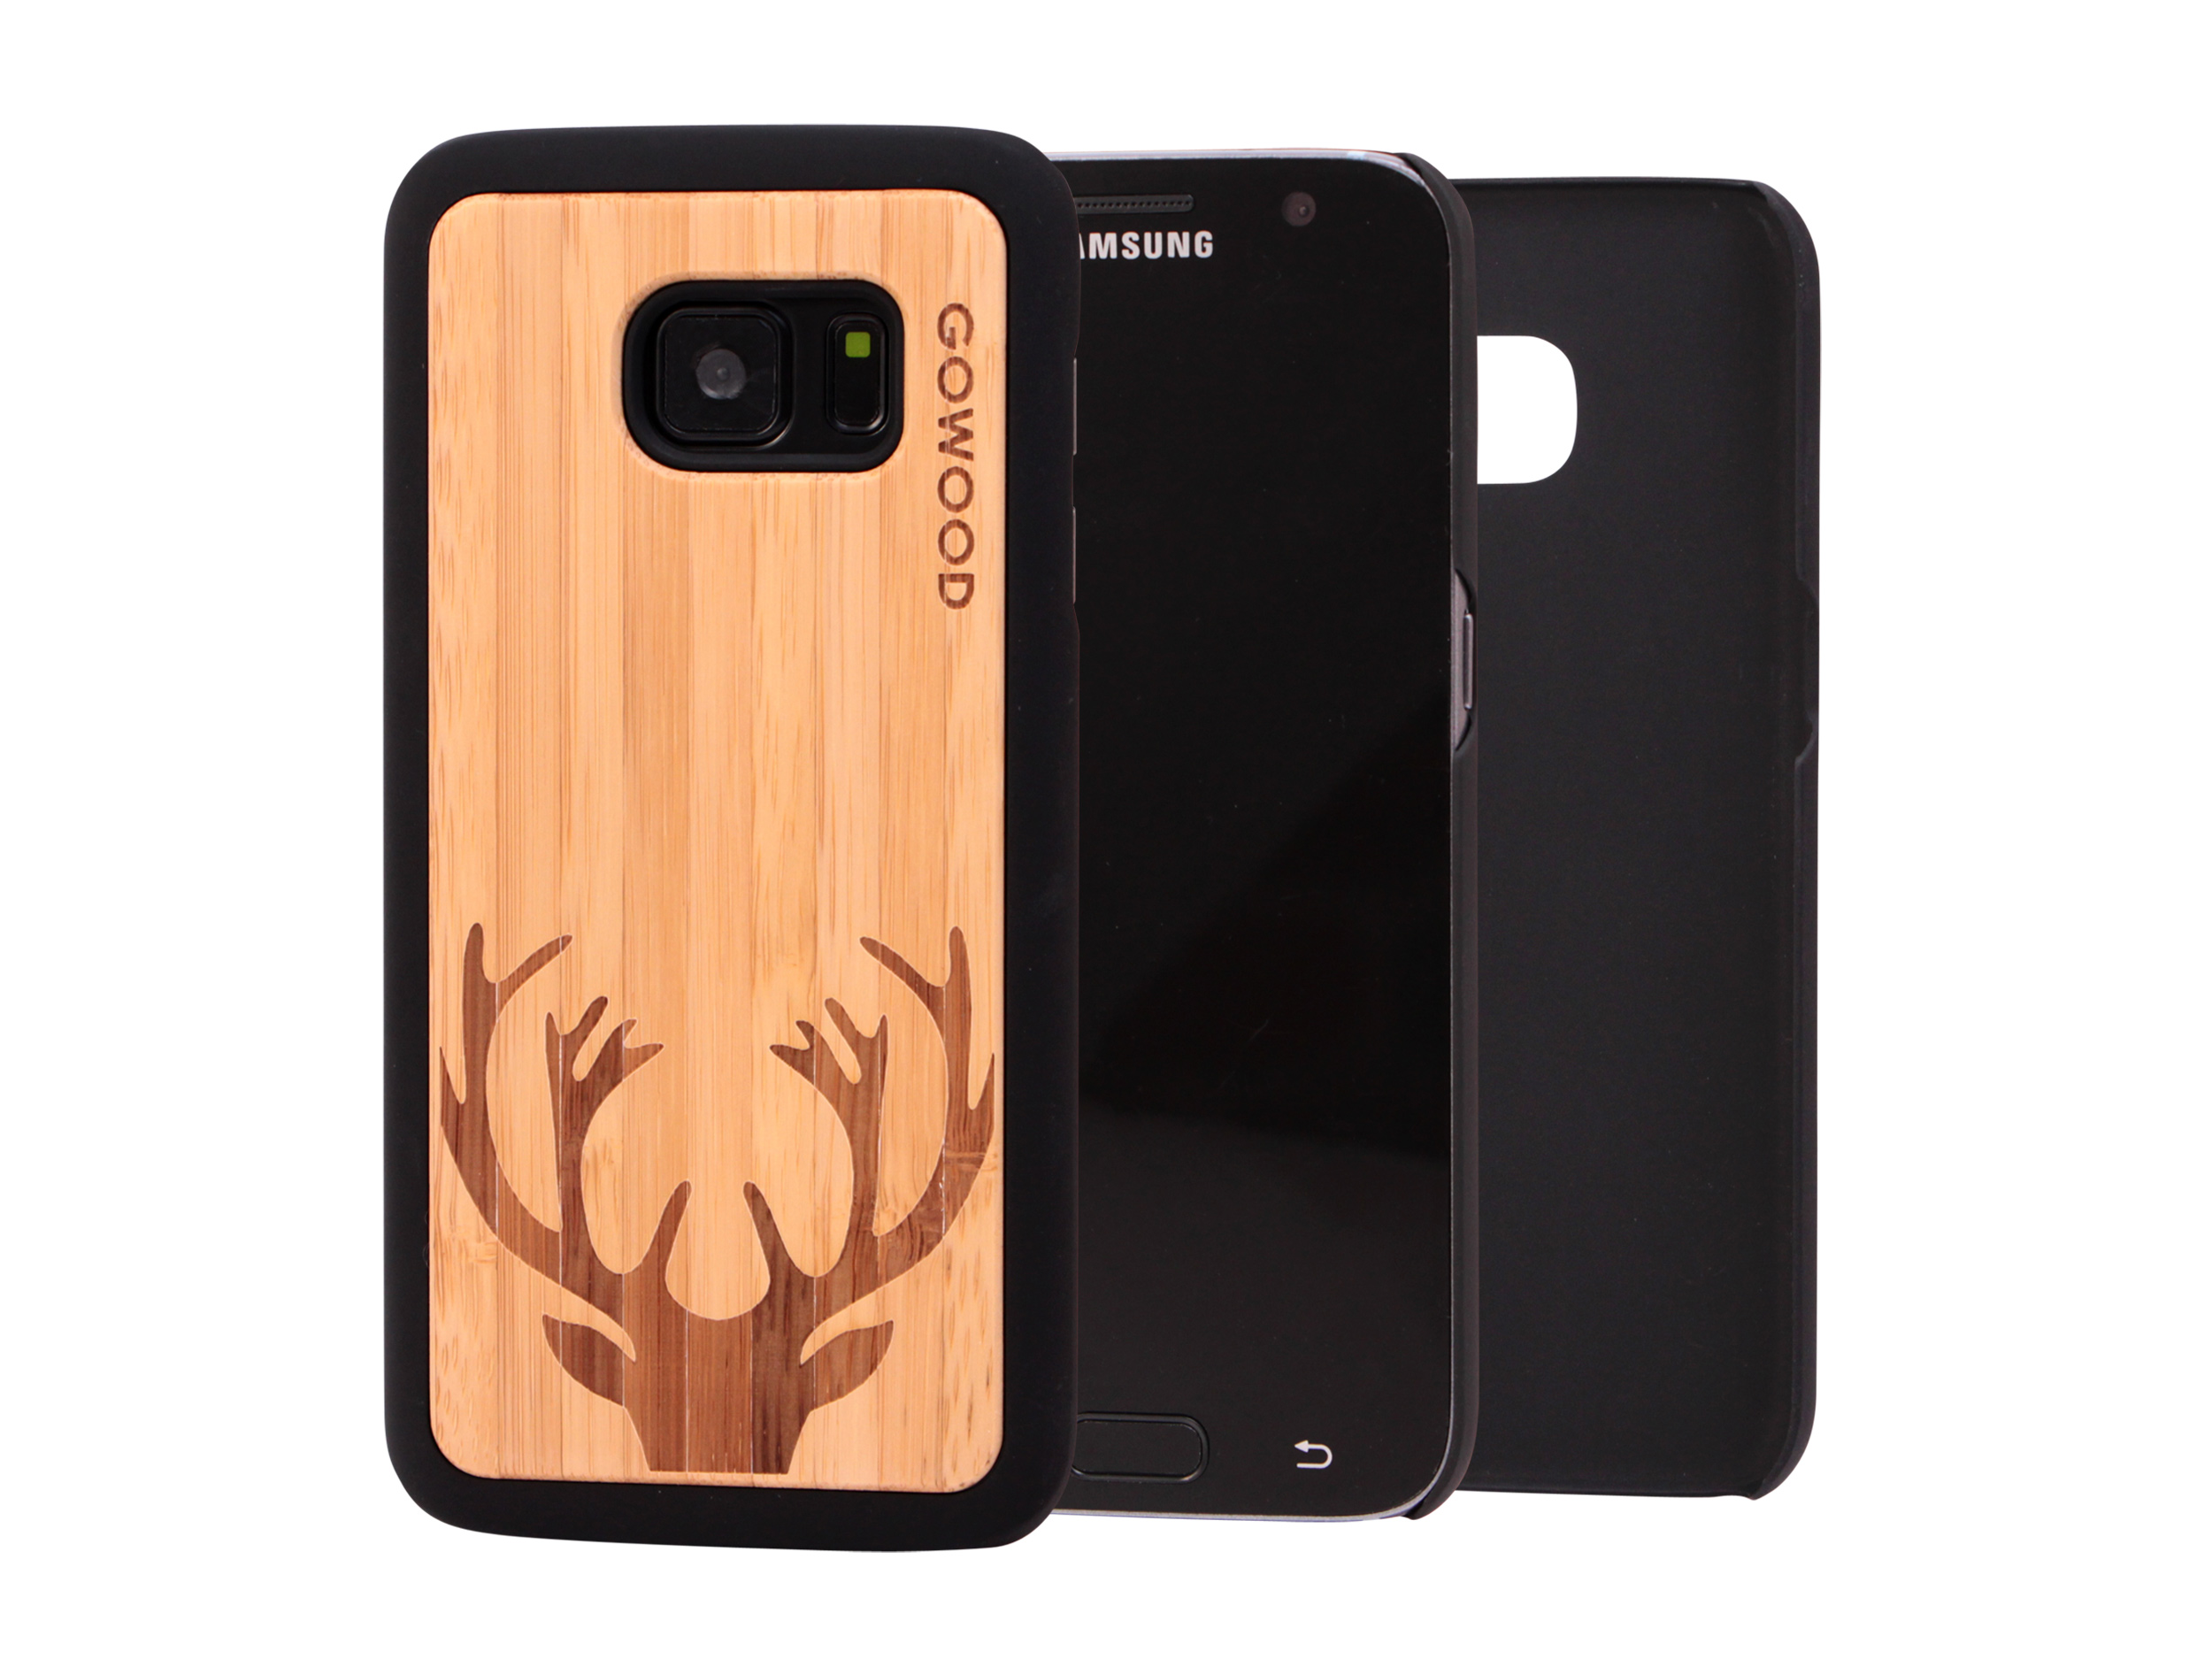 Samsung Galaxy S7 wood case, Galaxy S7 case bamboo deer : GW